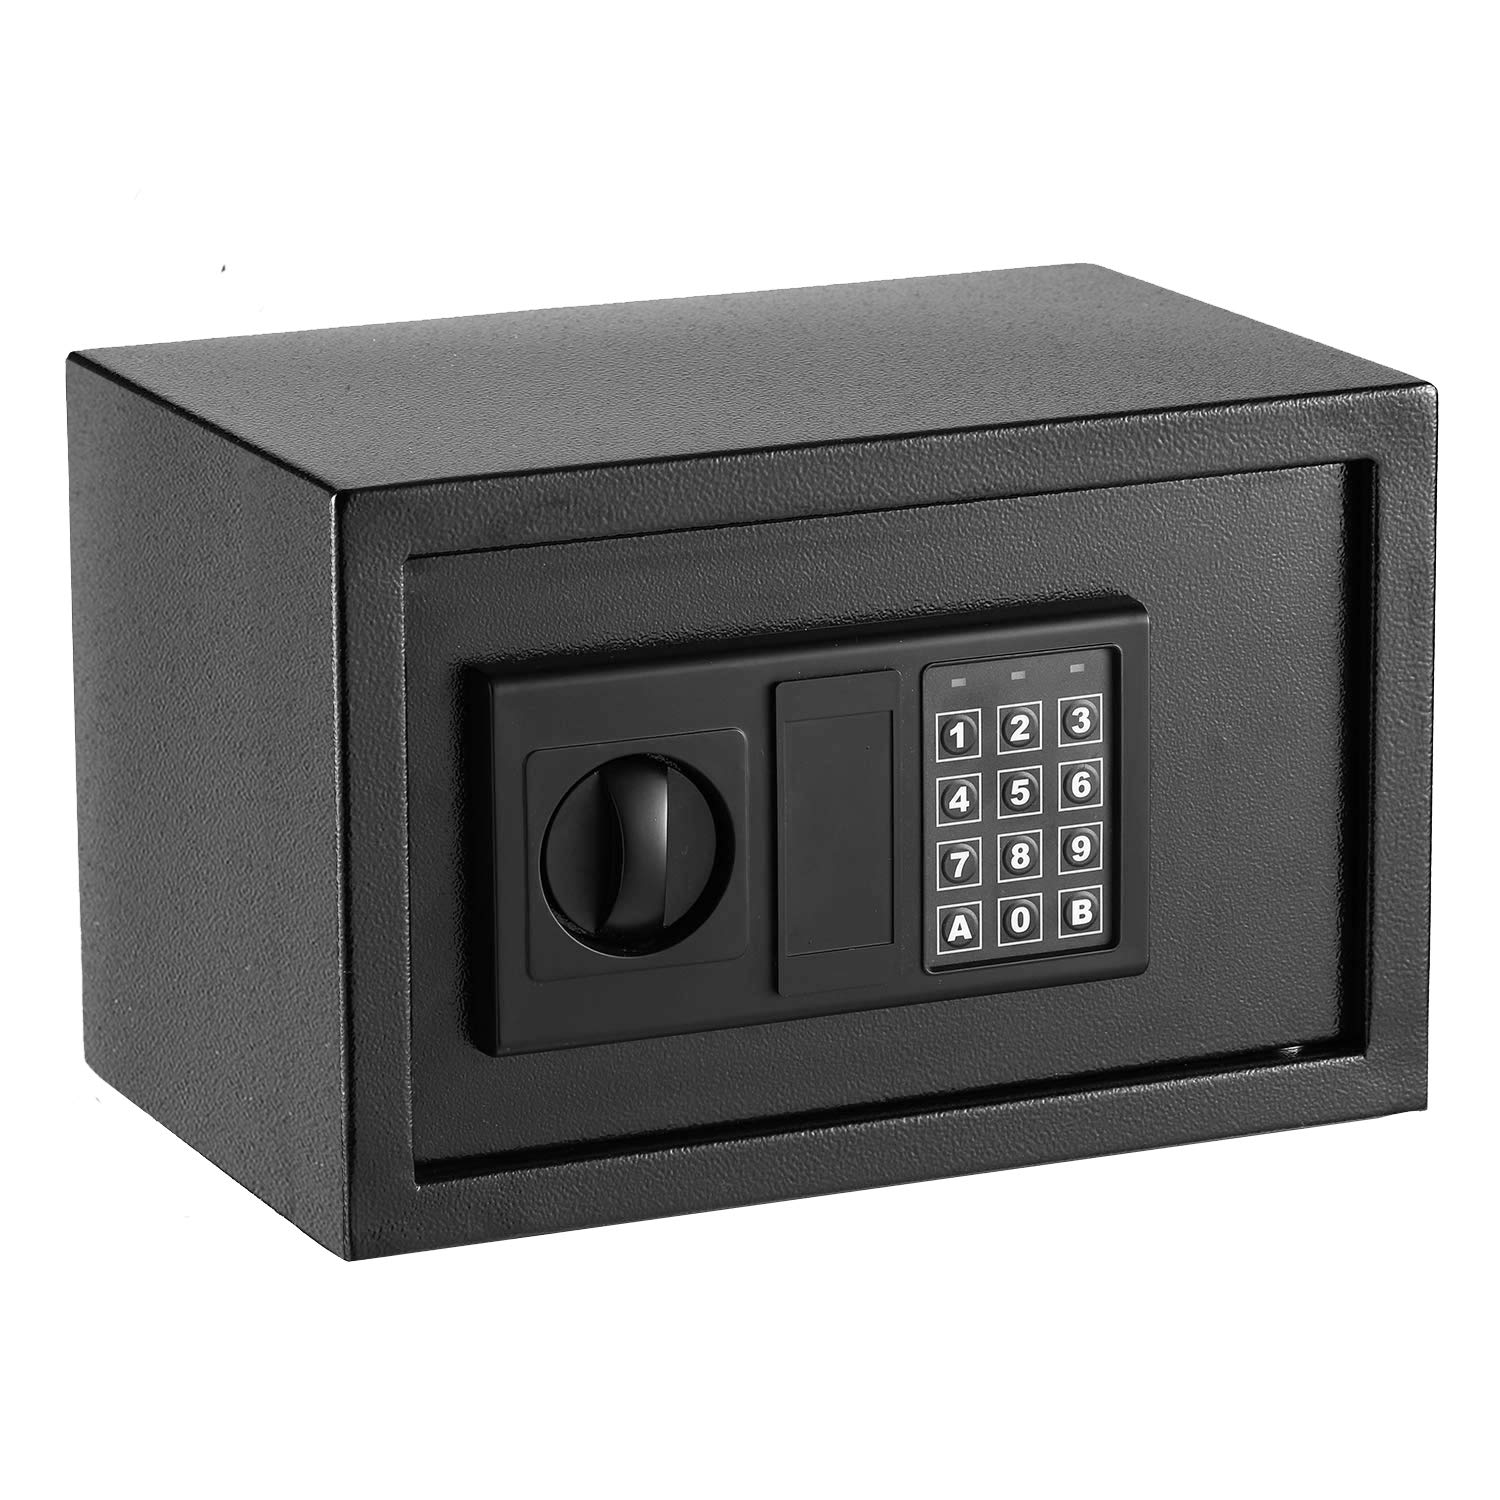 Digital Electronic Security Lock Cabinet Safe Box, Fireproof and Waterproof Solid Steel Wall-Anchoring Design Safe for Wallet Jewelry Cash Storage, Includes 2 Emergency Keys by INVIE